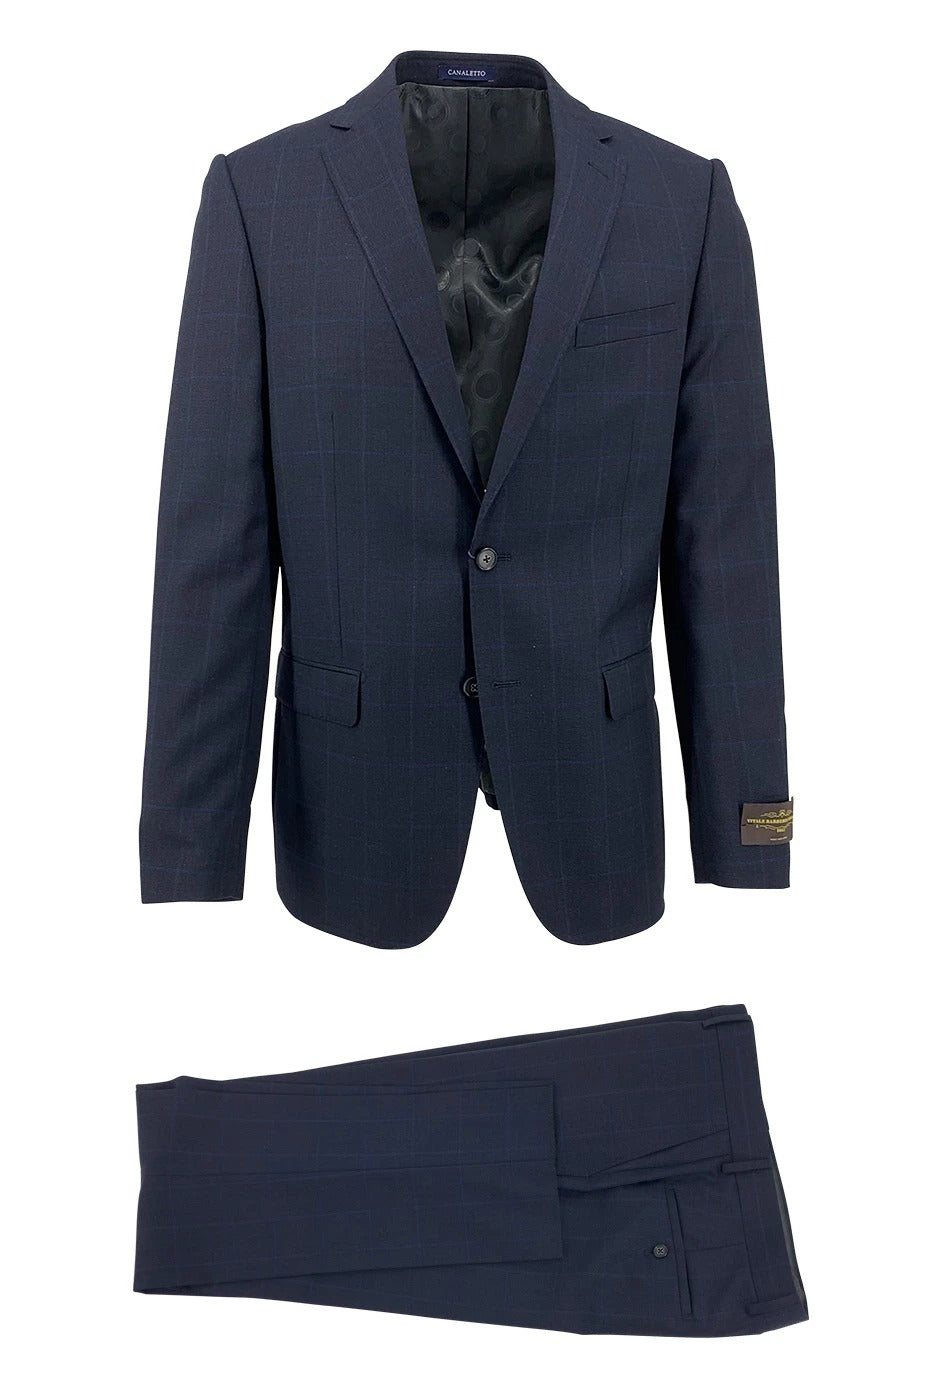 Canaletto Midnight Navy with Blue Windowpane Dolcetto Modern Fit Pure Wool Suit by Vitale Barberis Canonico Cloth CV187.133/2